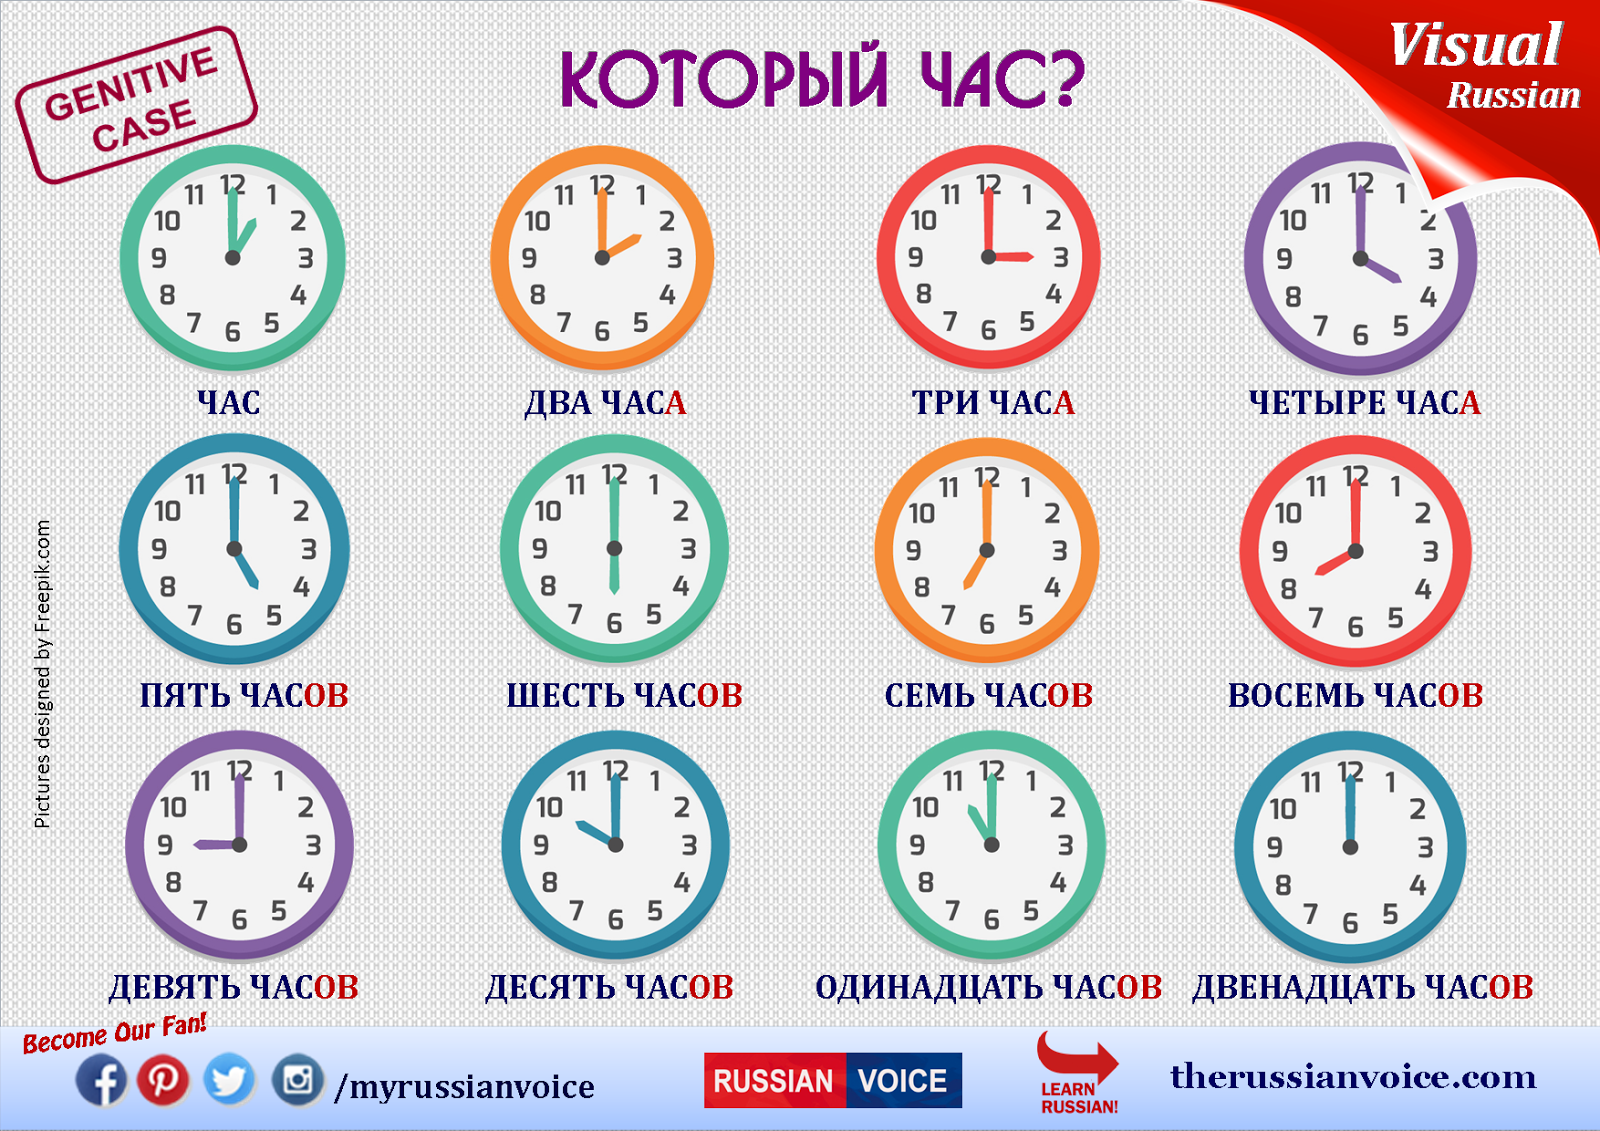 Russian Learning Materials For Beginners Russian Voice Russian Lessons Online Via Skype With